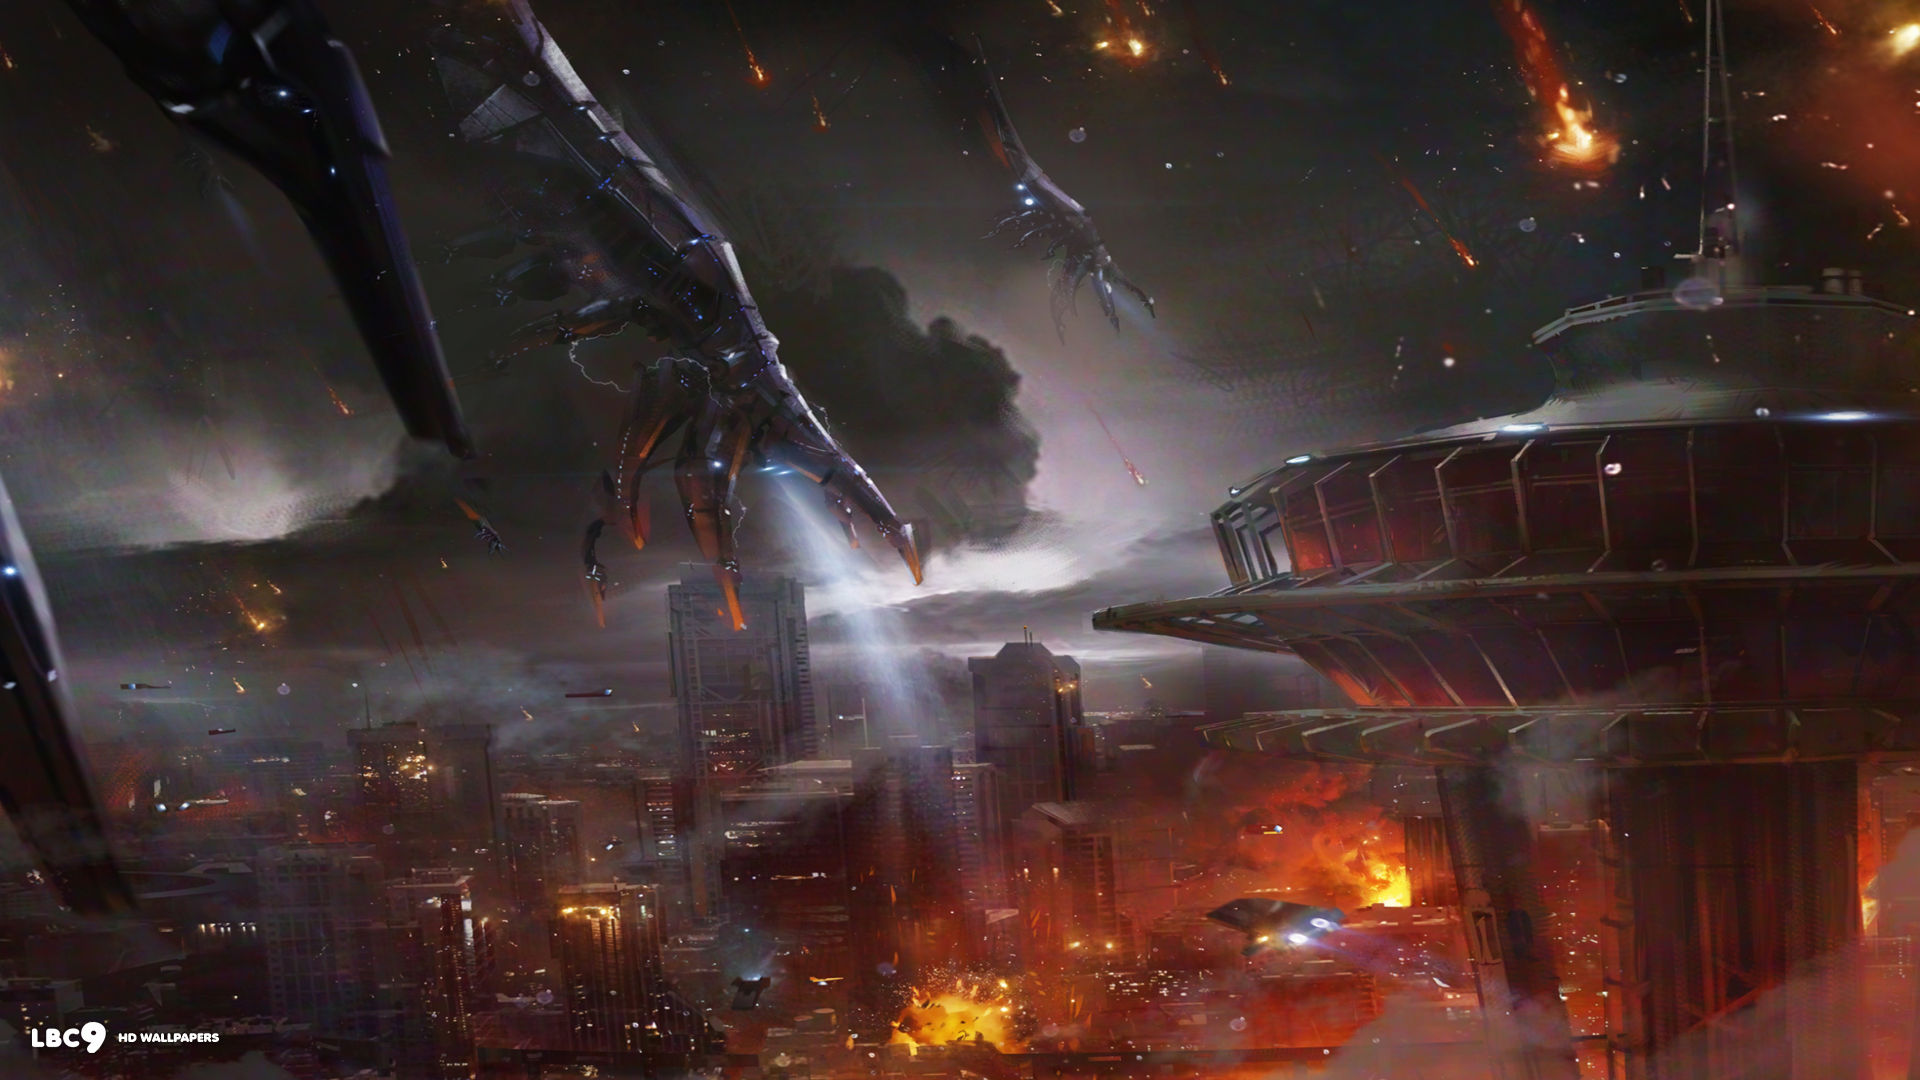 mass effect 3 wallpaper 62/73   role playing games hd backgrounds